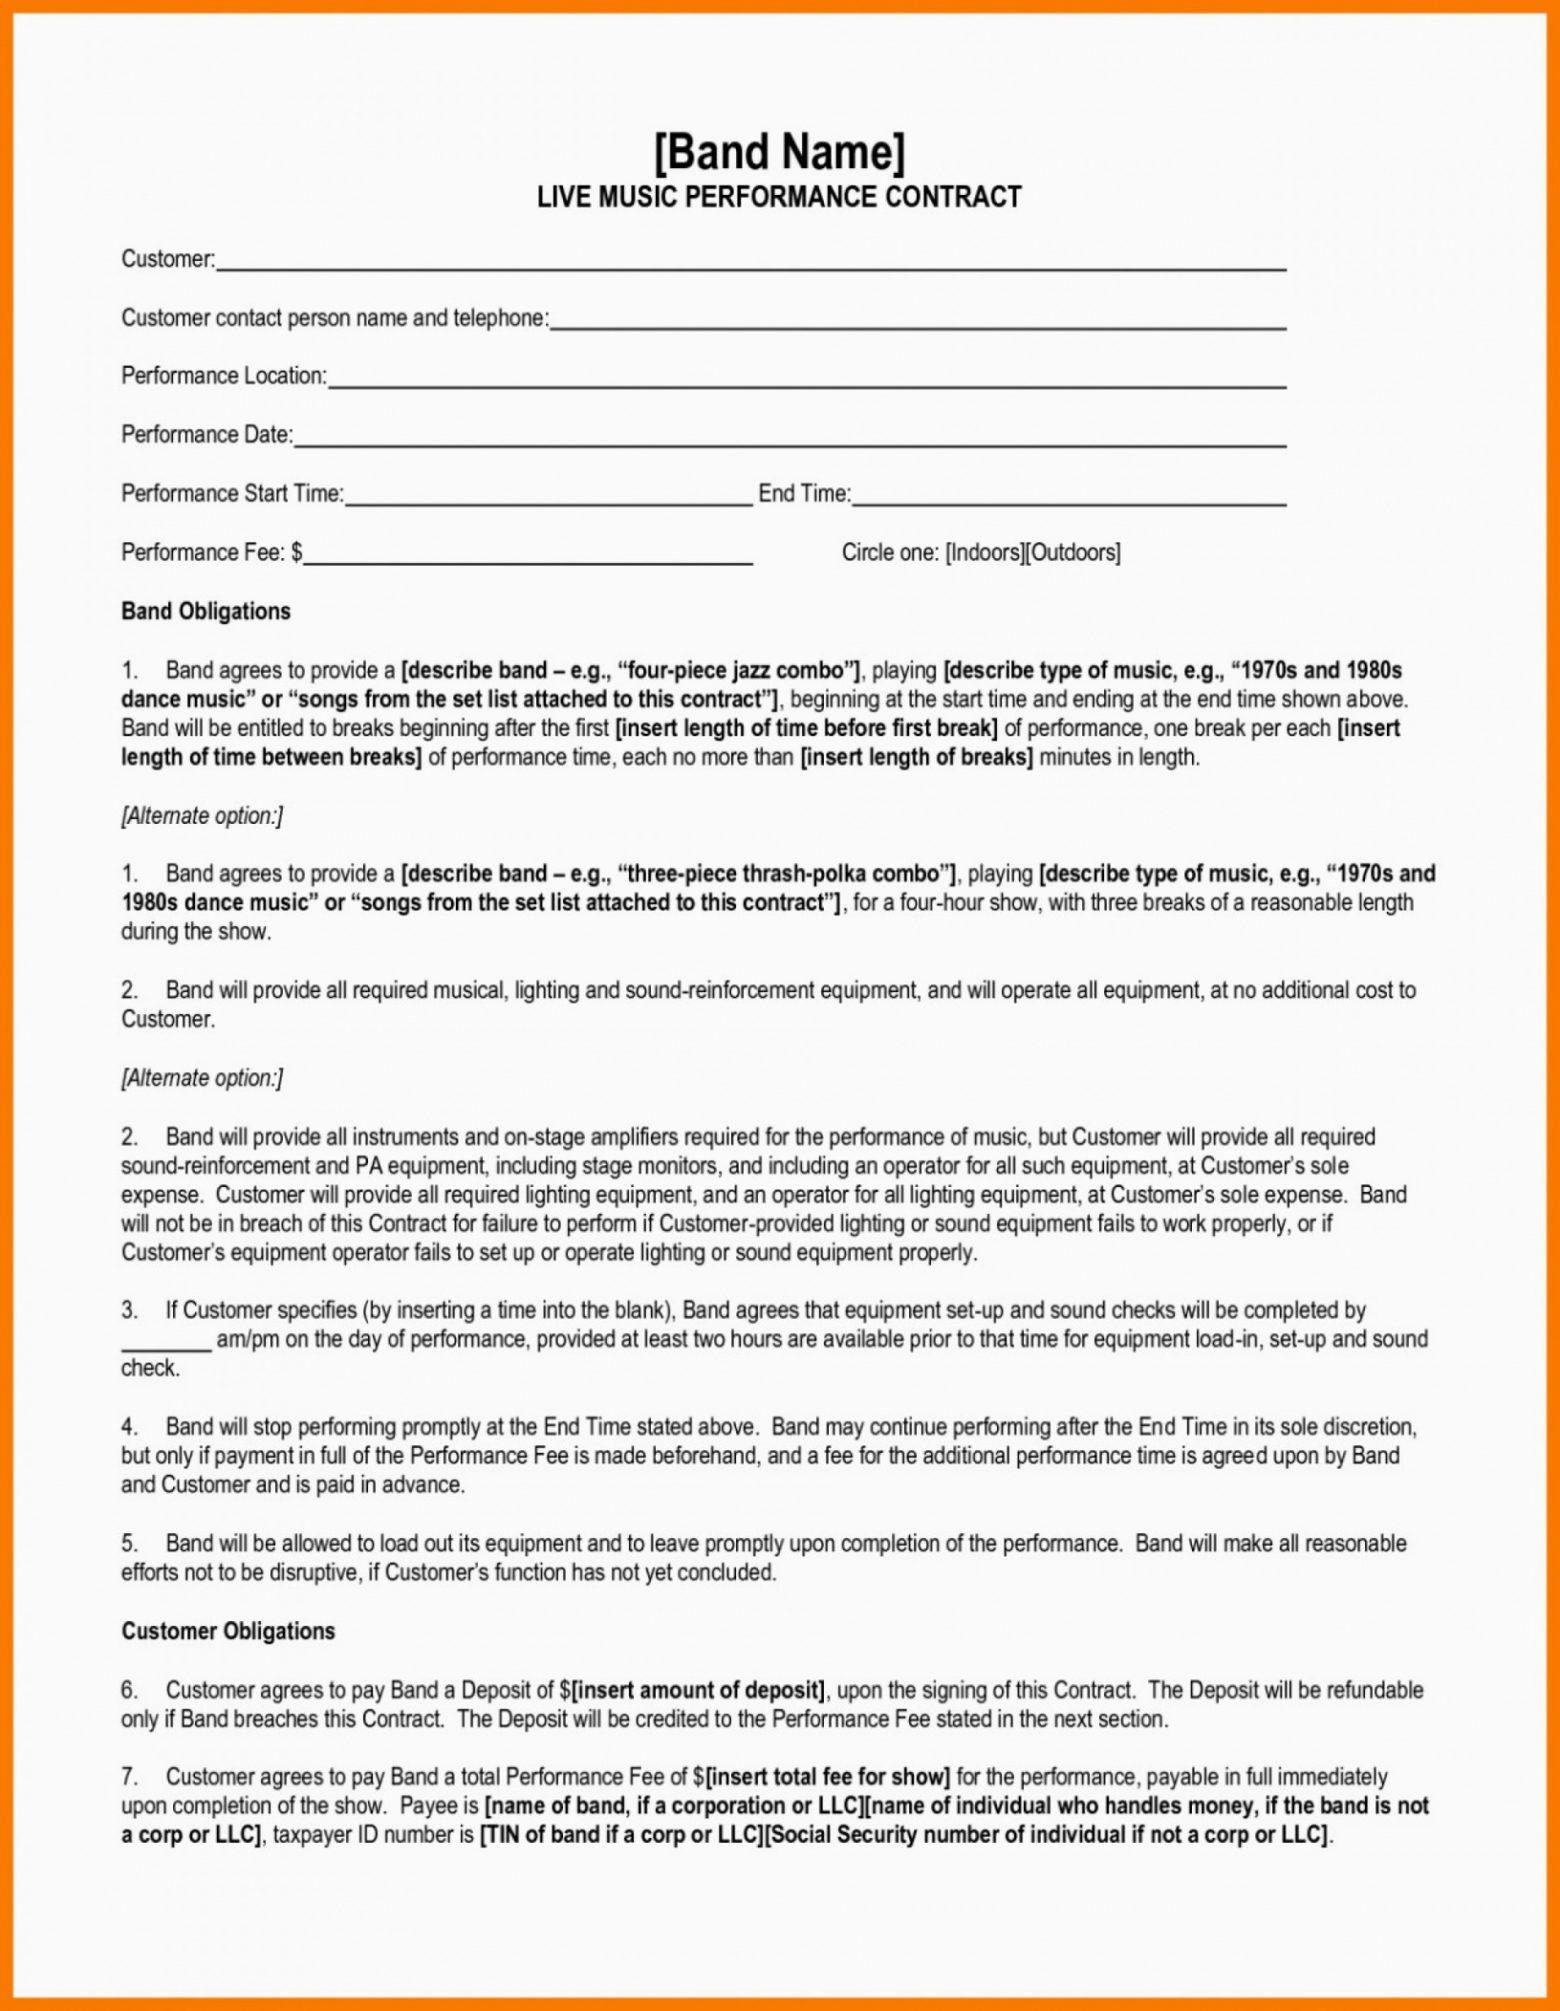 our 004 artist performance contract template booking band agreement band rider contract template